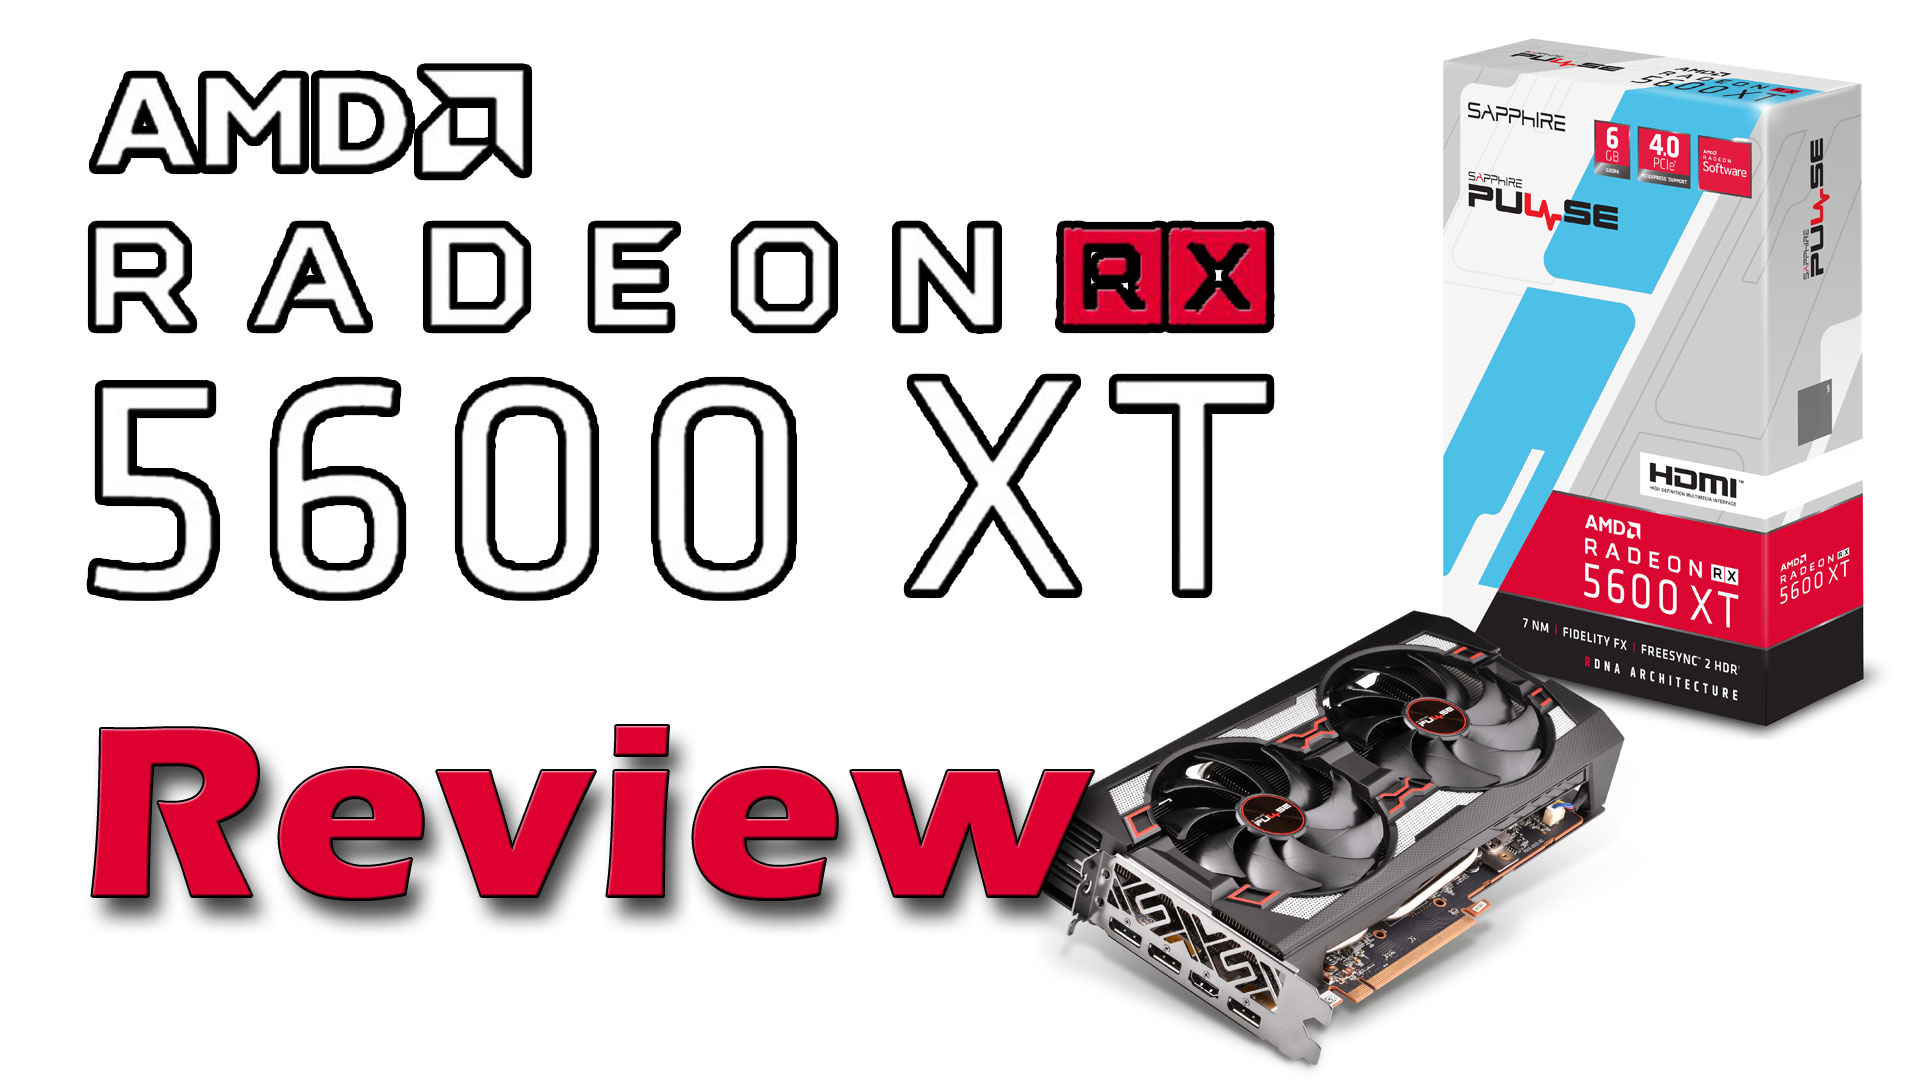 AMD Radeon RX 5600 XT Review